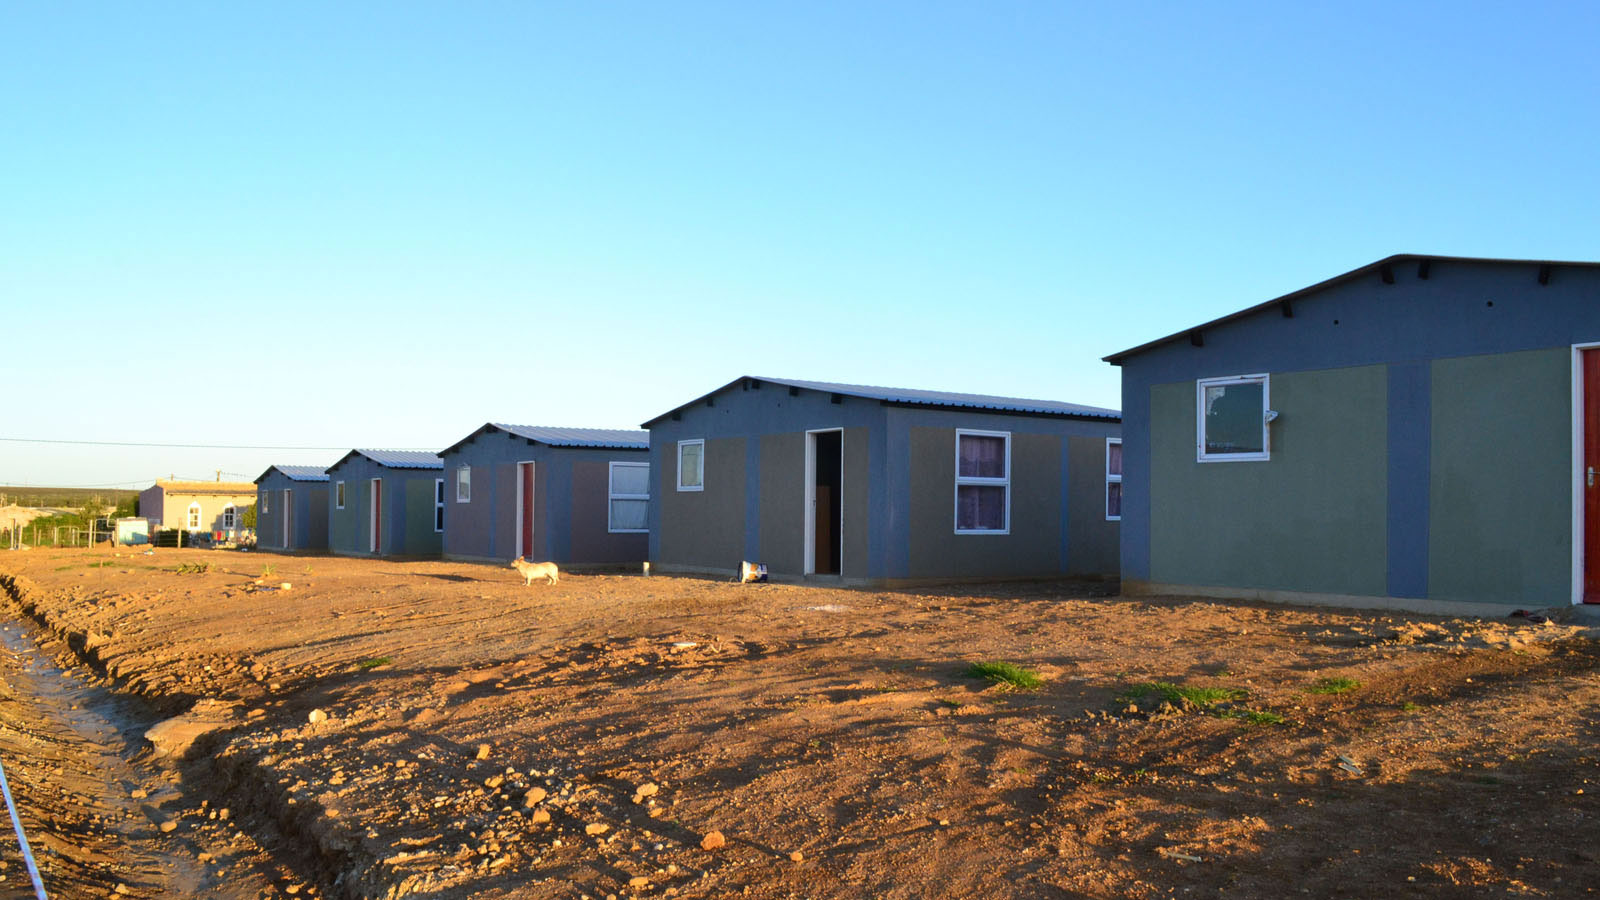 Anene Booysen was raped and disembowelled between two of these RDP (government-subsidized) houses in the rural, Western Cape town of Bredasdorp in February 2013. The case sparked a national outcry in South Africa